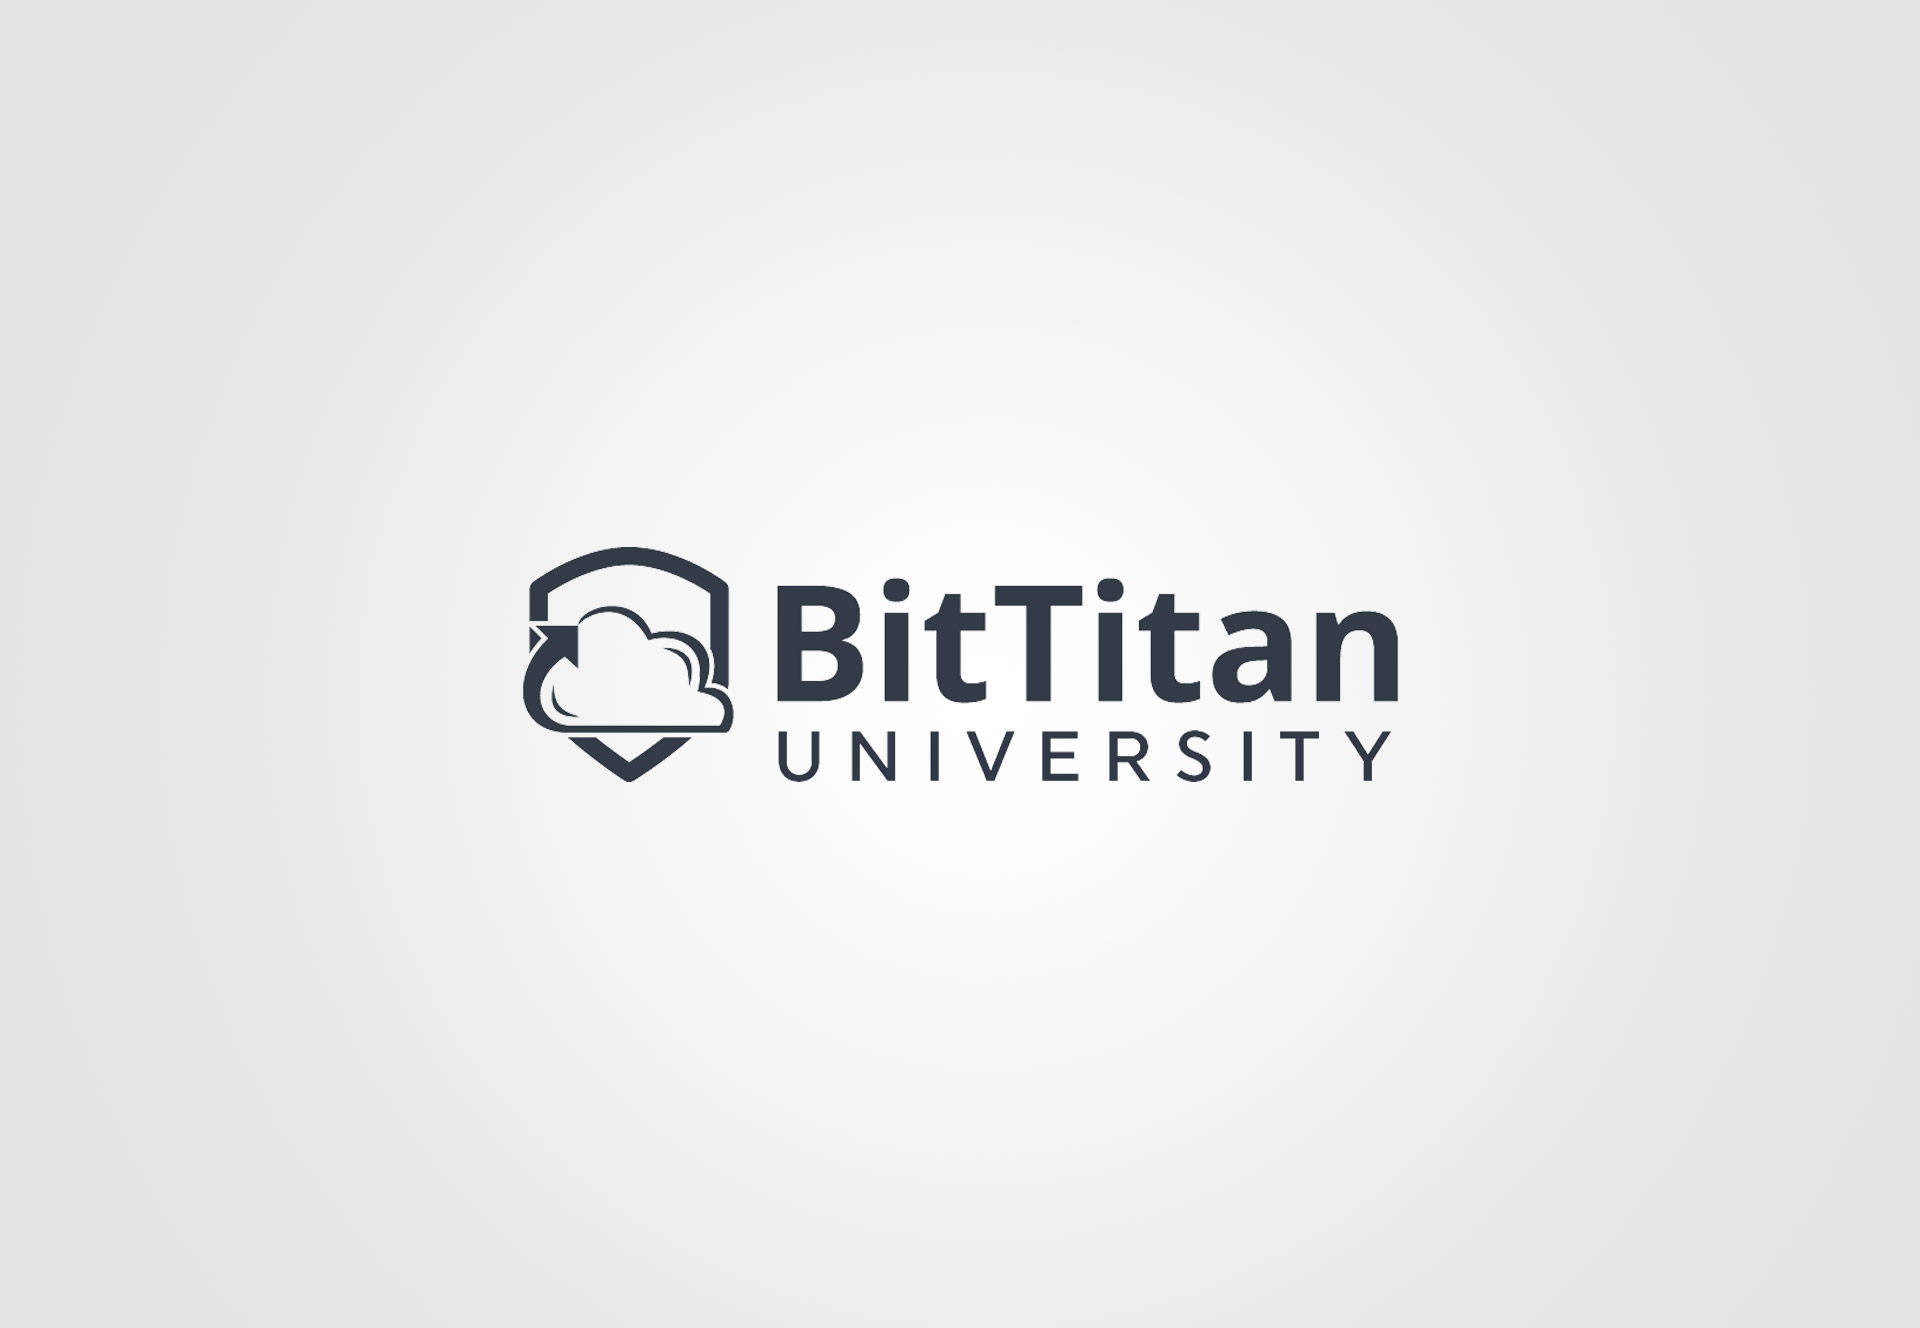 BitTitan University – Now open for enrollment